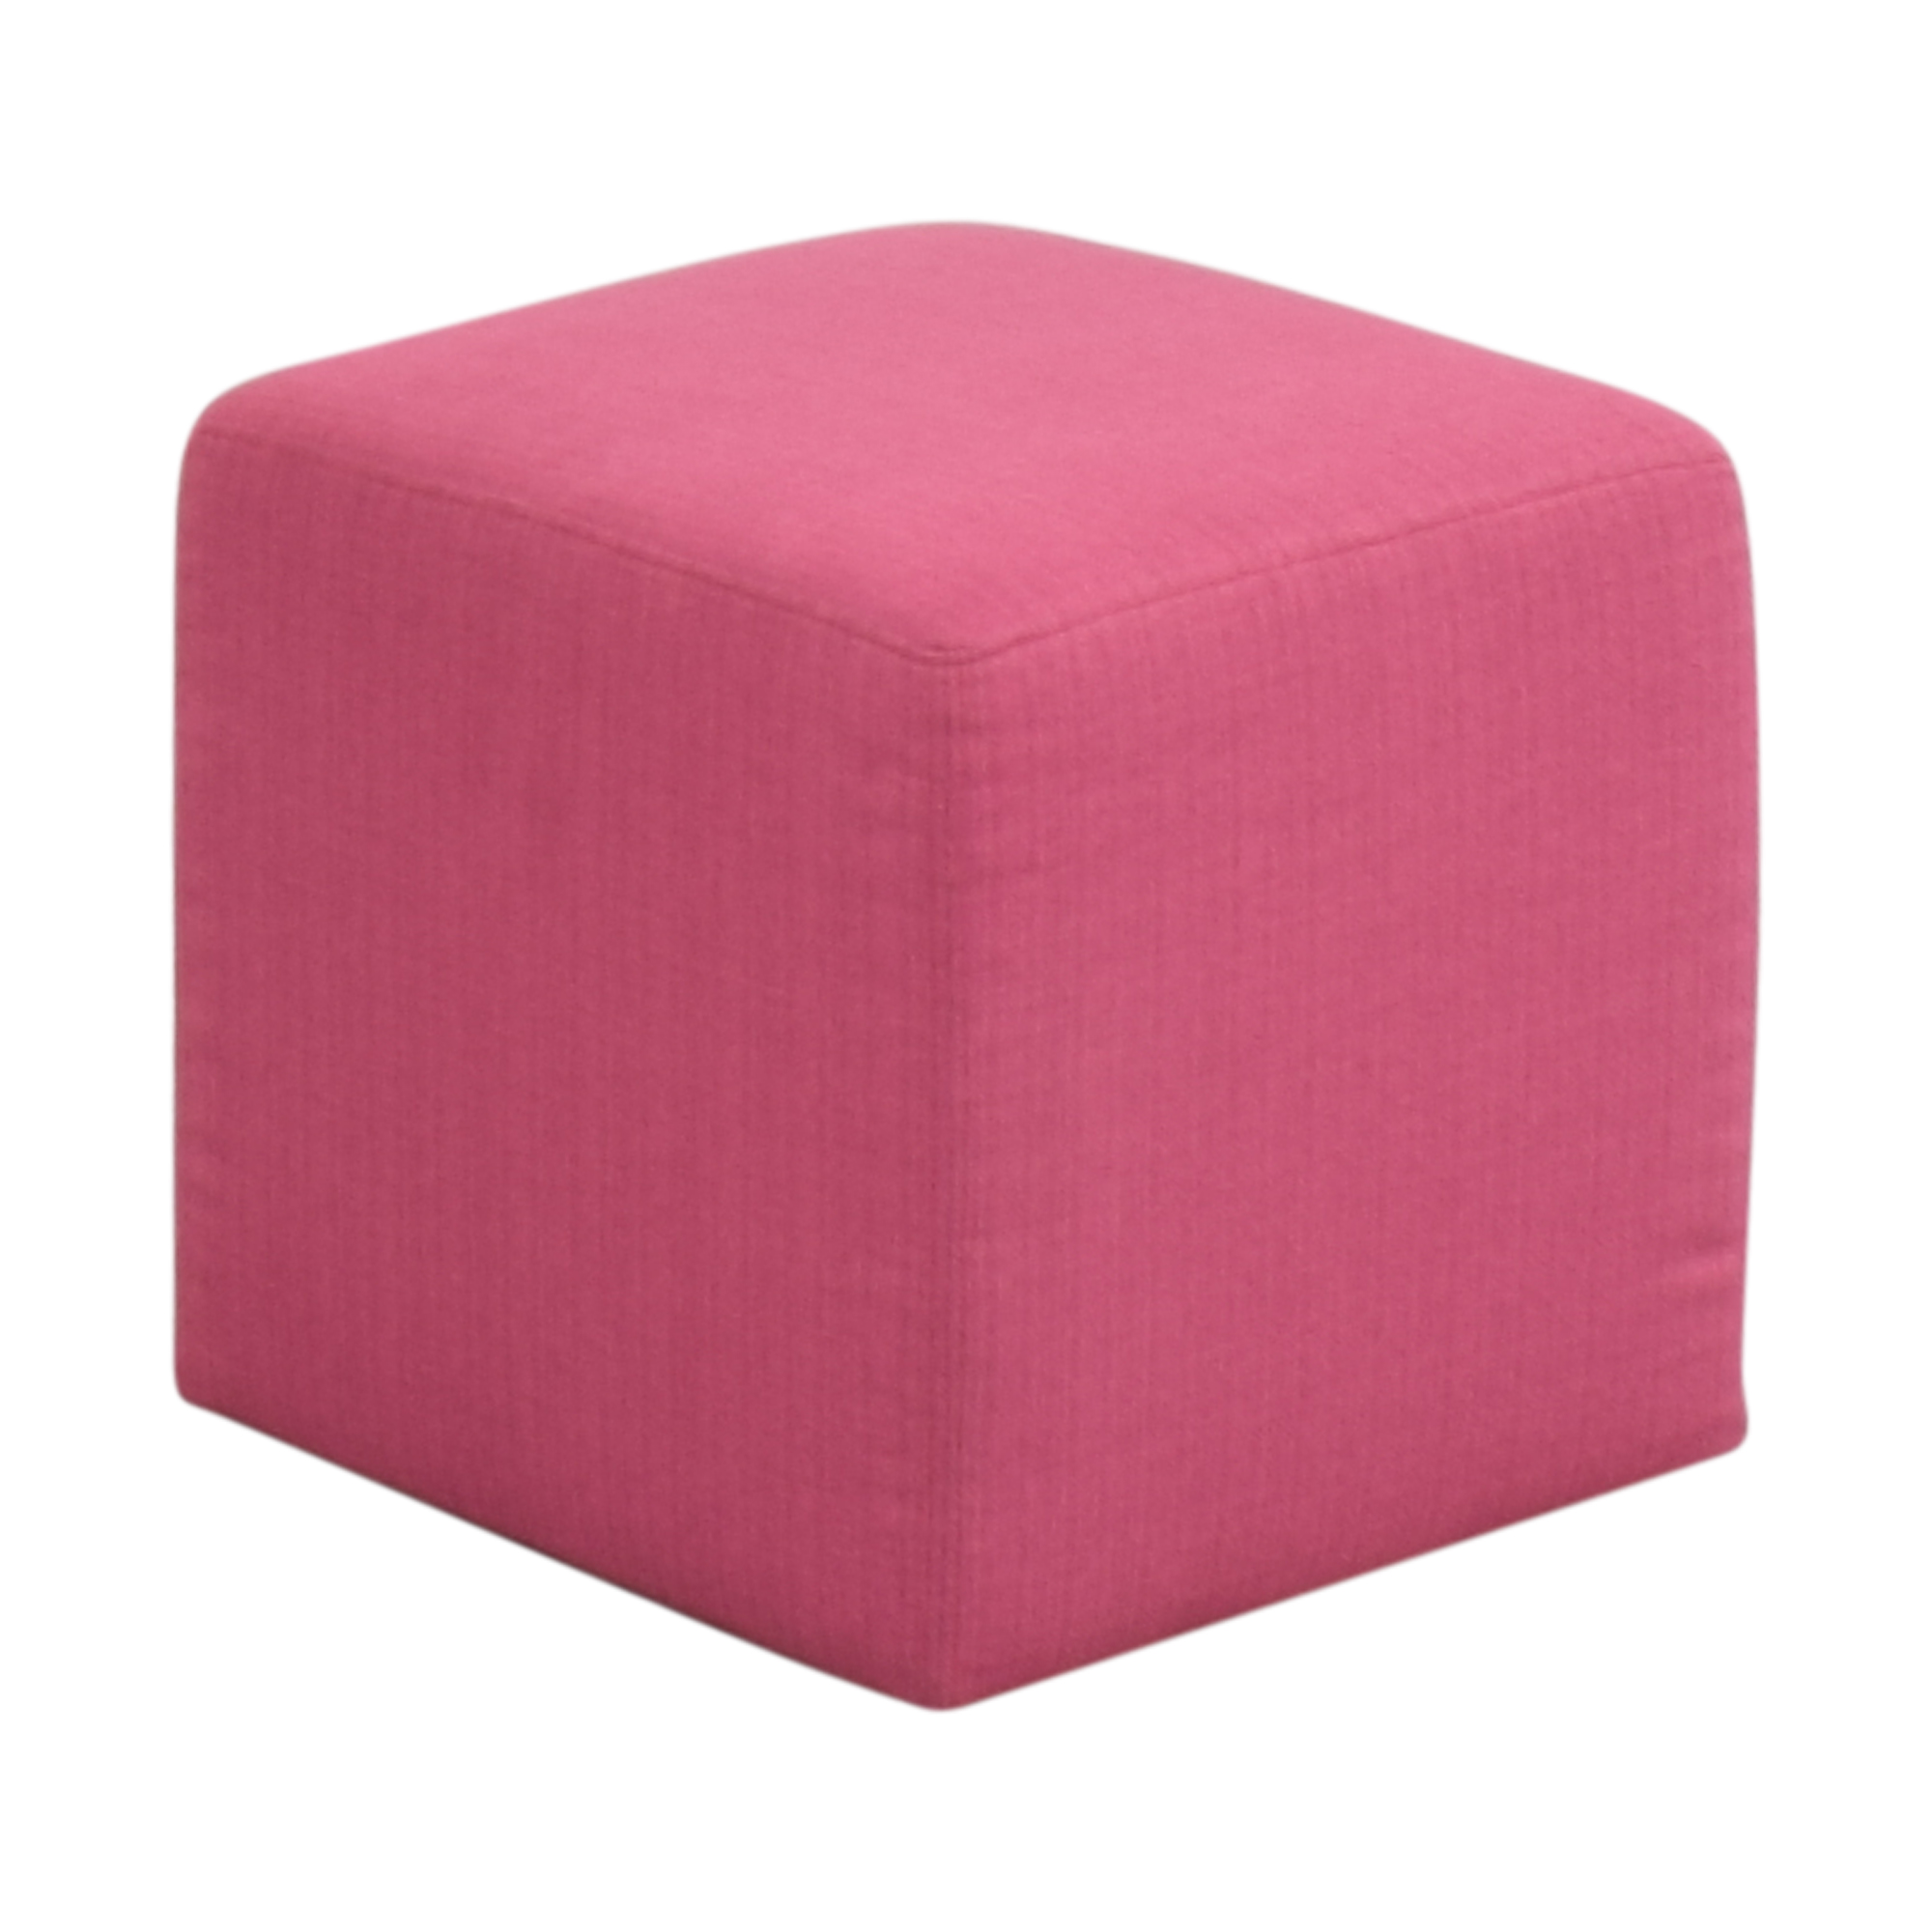 ABC Carpet & Home Square Upholstered Ottoman price